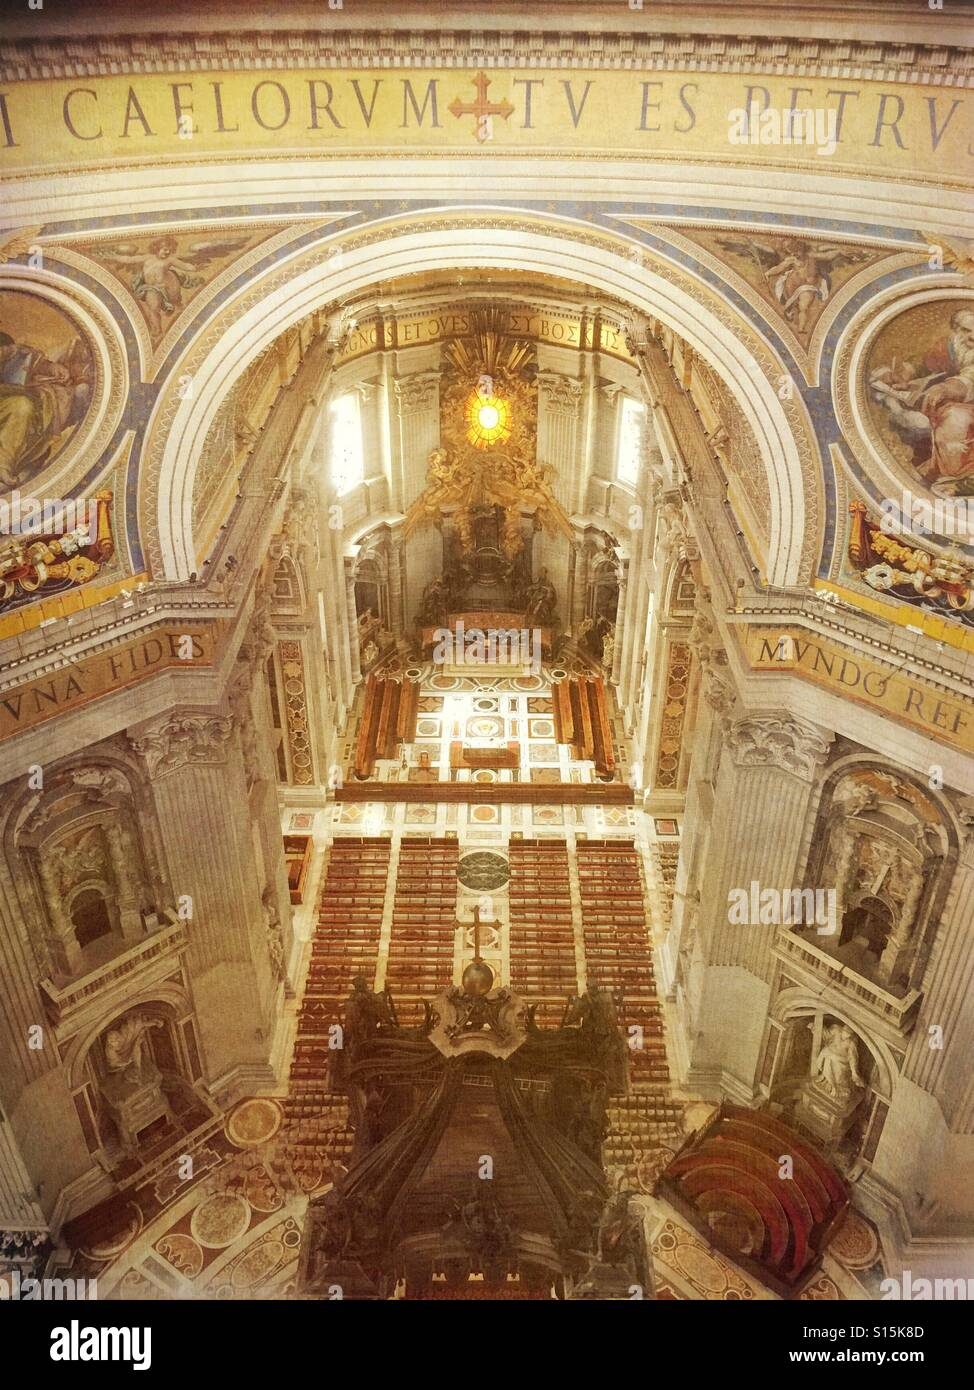 Vatican City - Interior area of St Peter's Basilica as seen from view deck inside cupola.Stock Photo